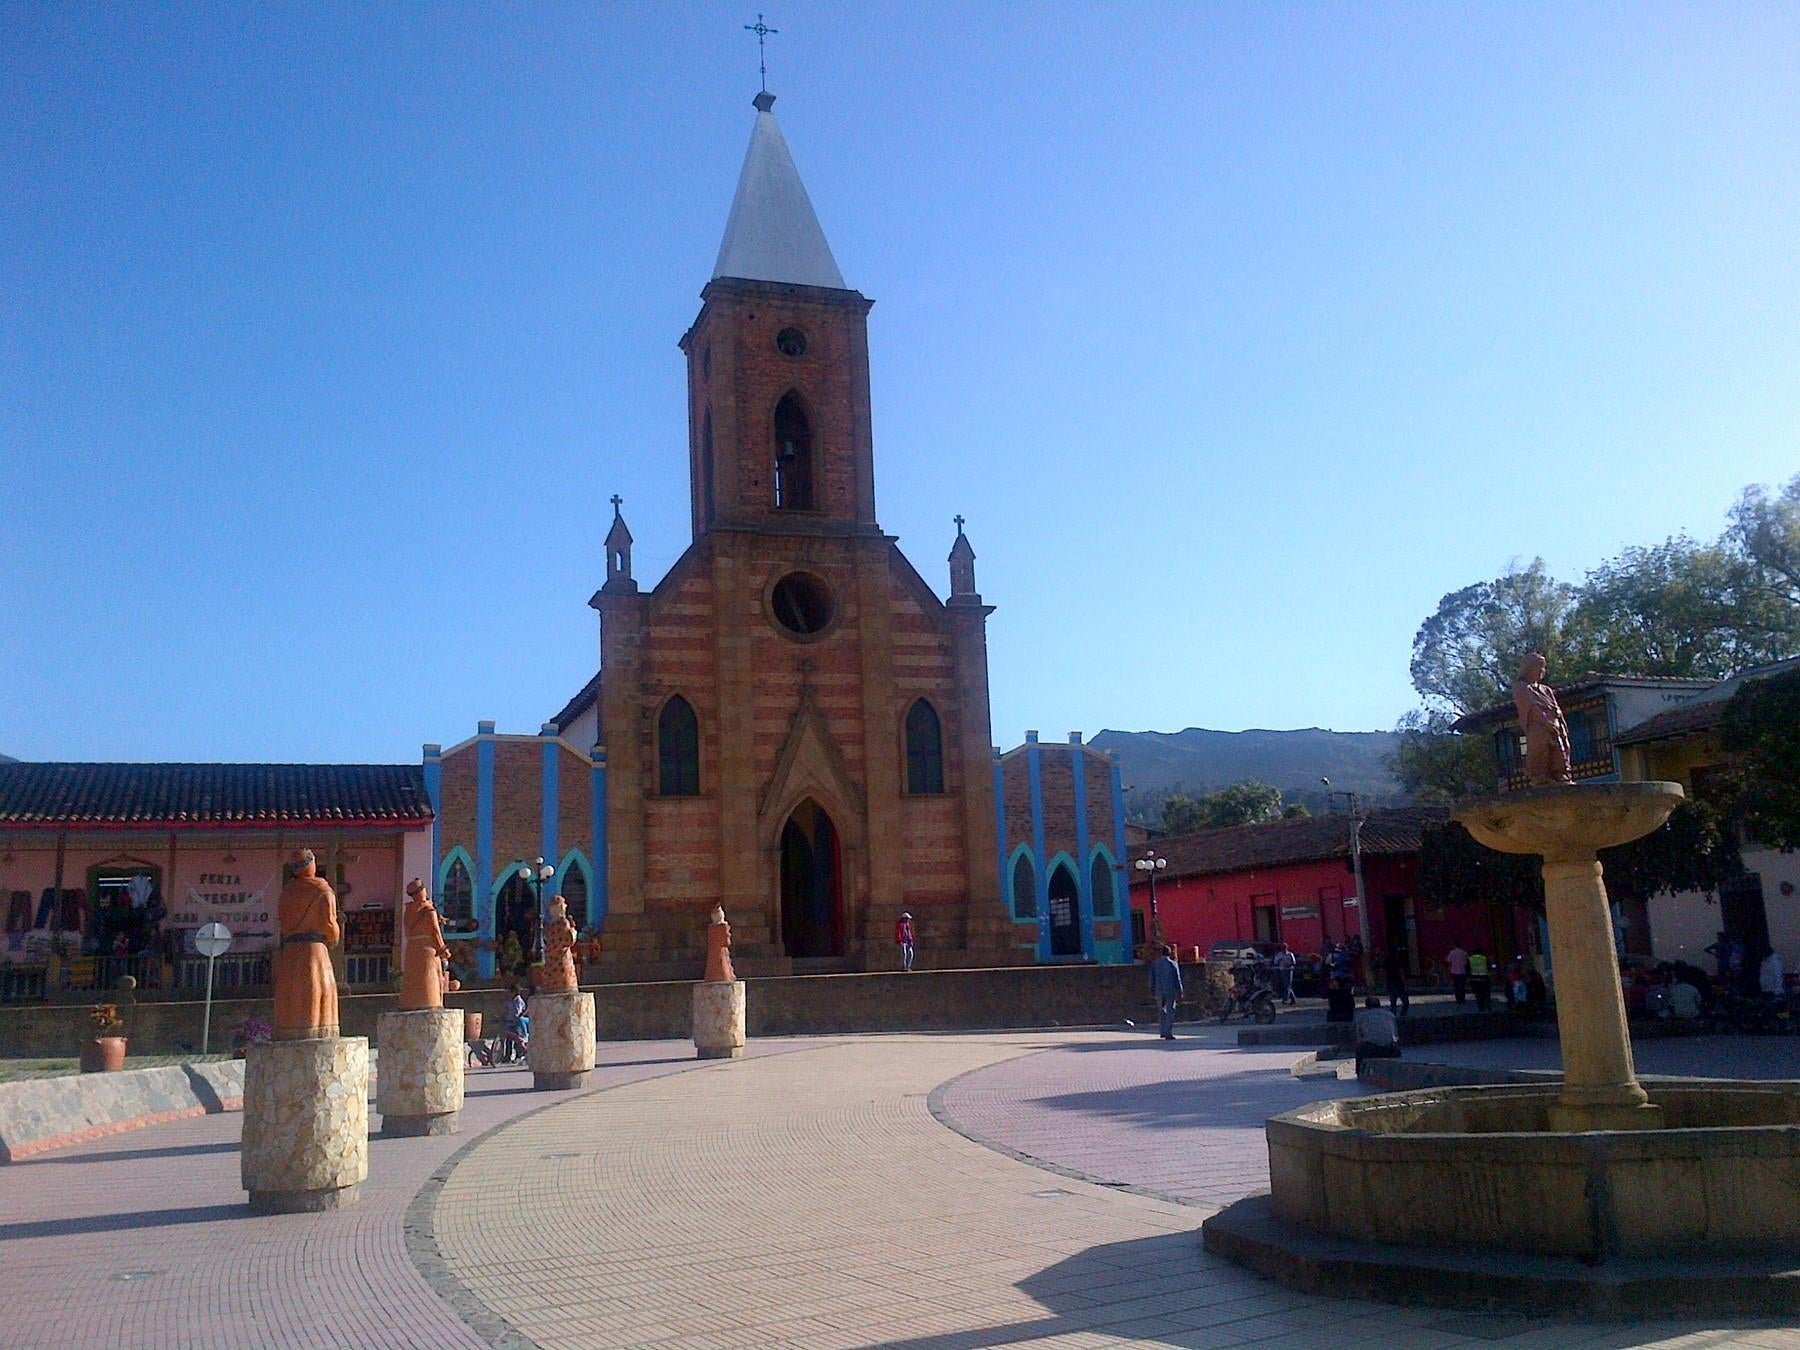 Pueblo en Plaza Mayor de Ráquira